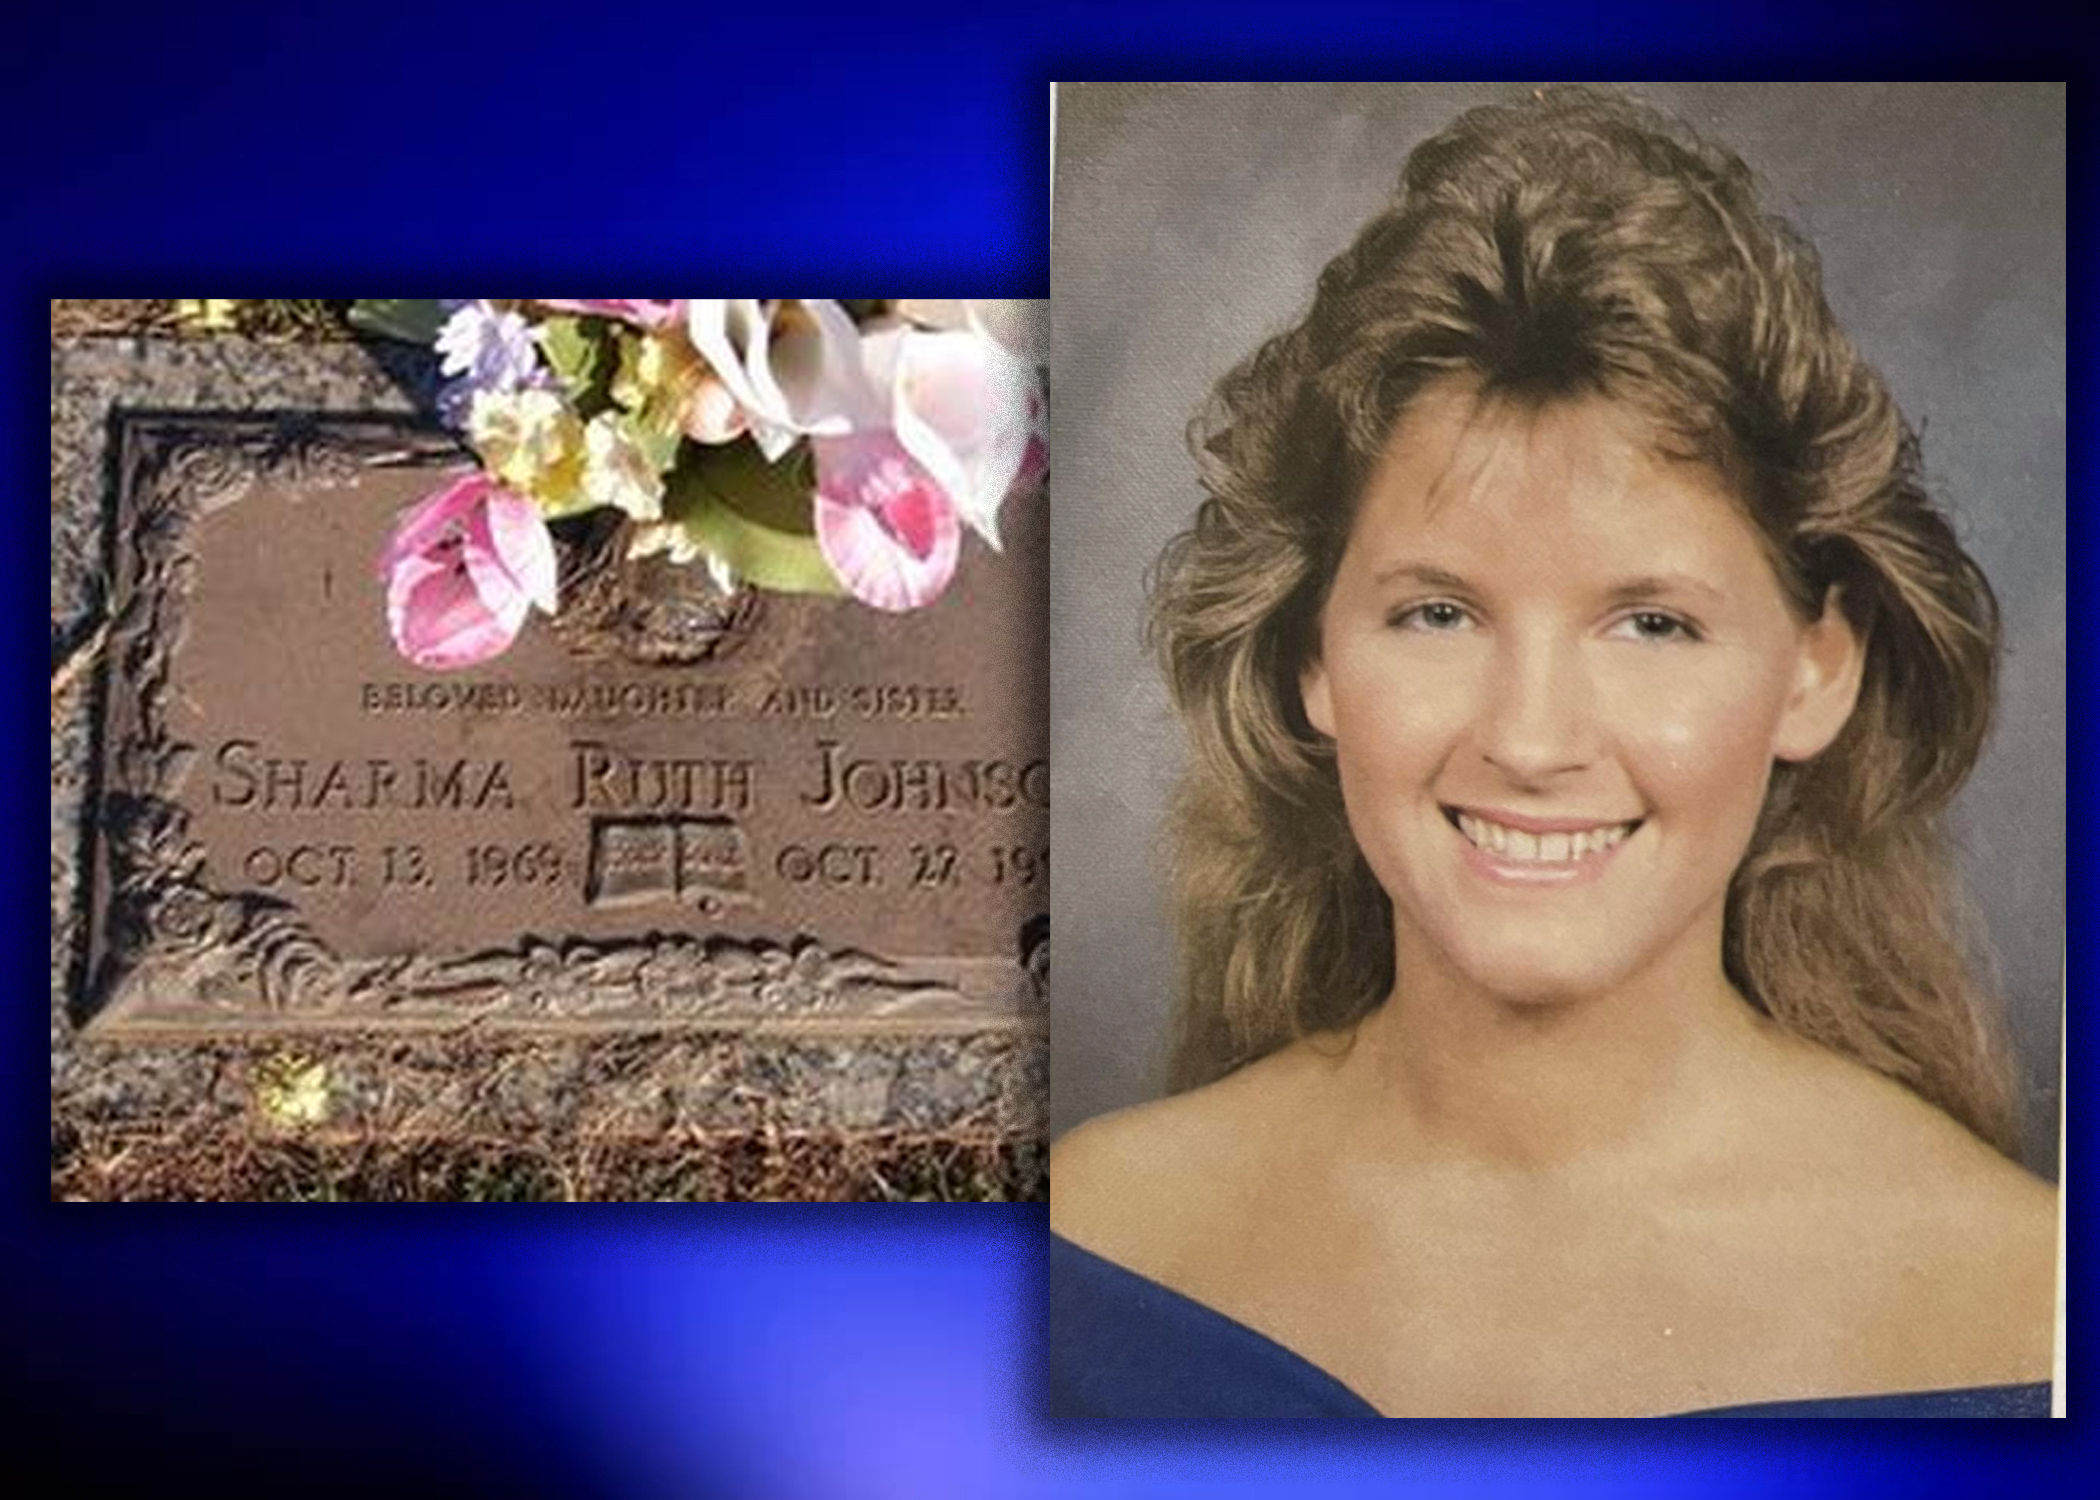 Man convicted in 1991 slaying of Trussville woman gets new execution date